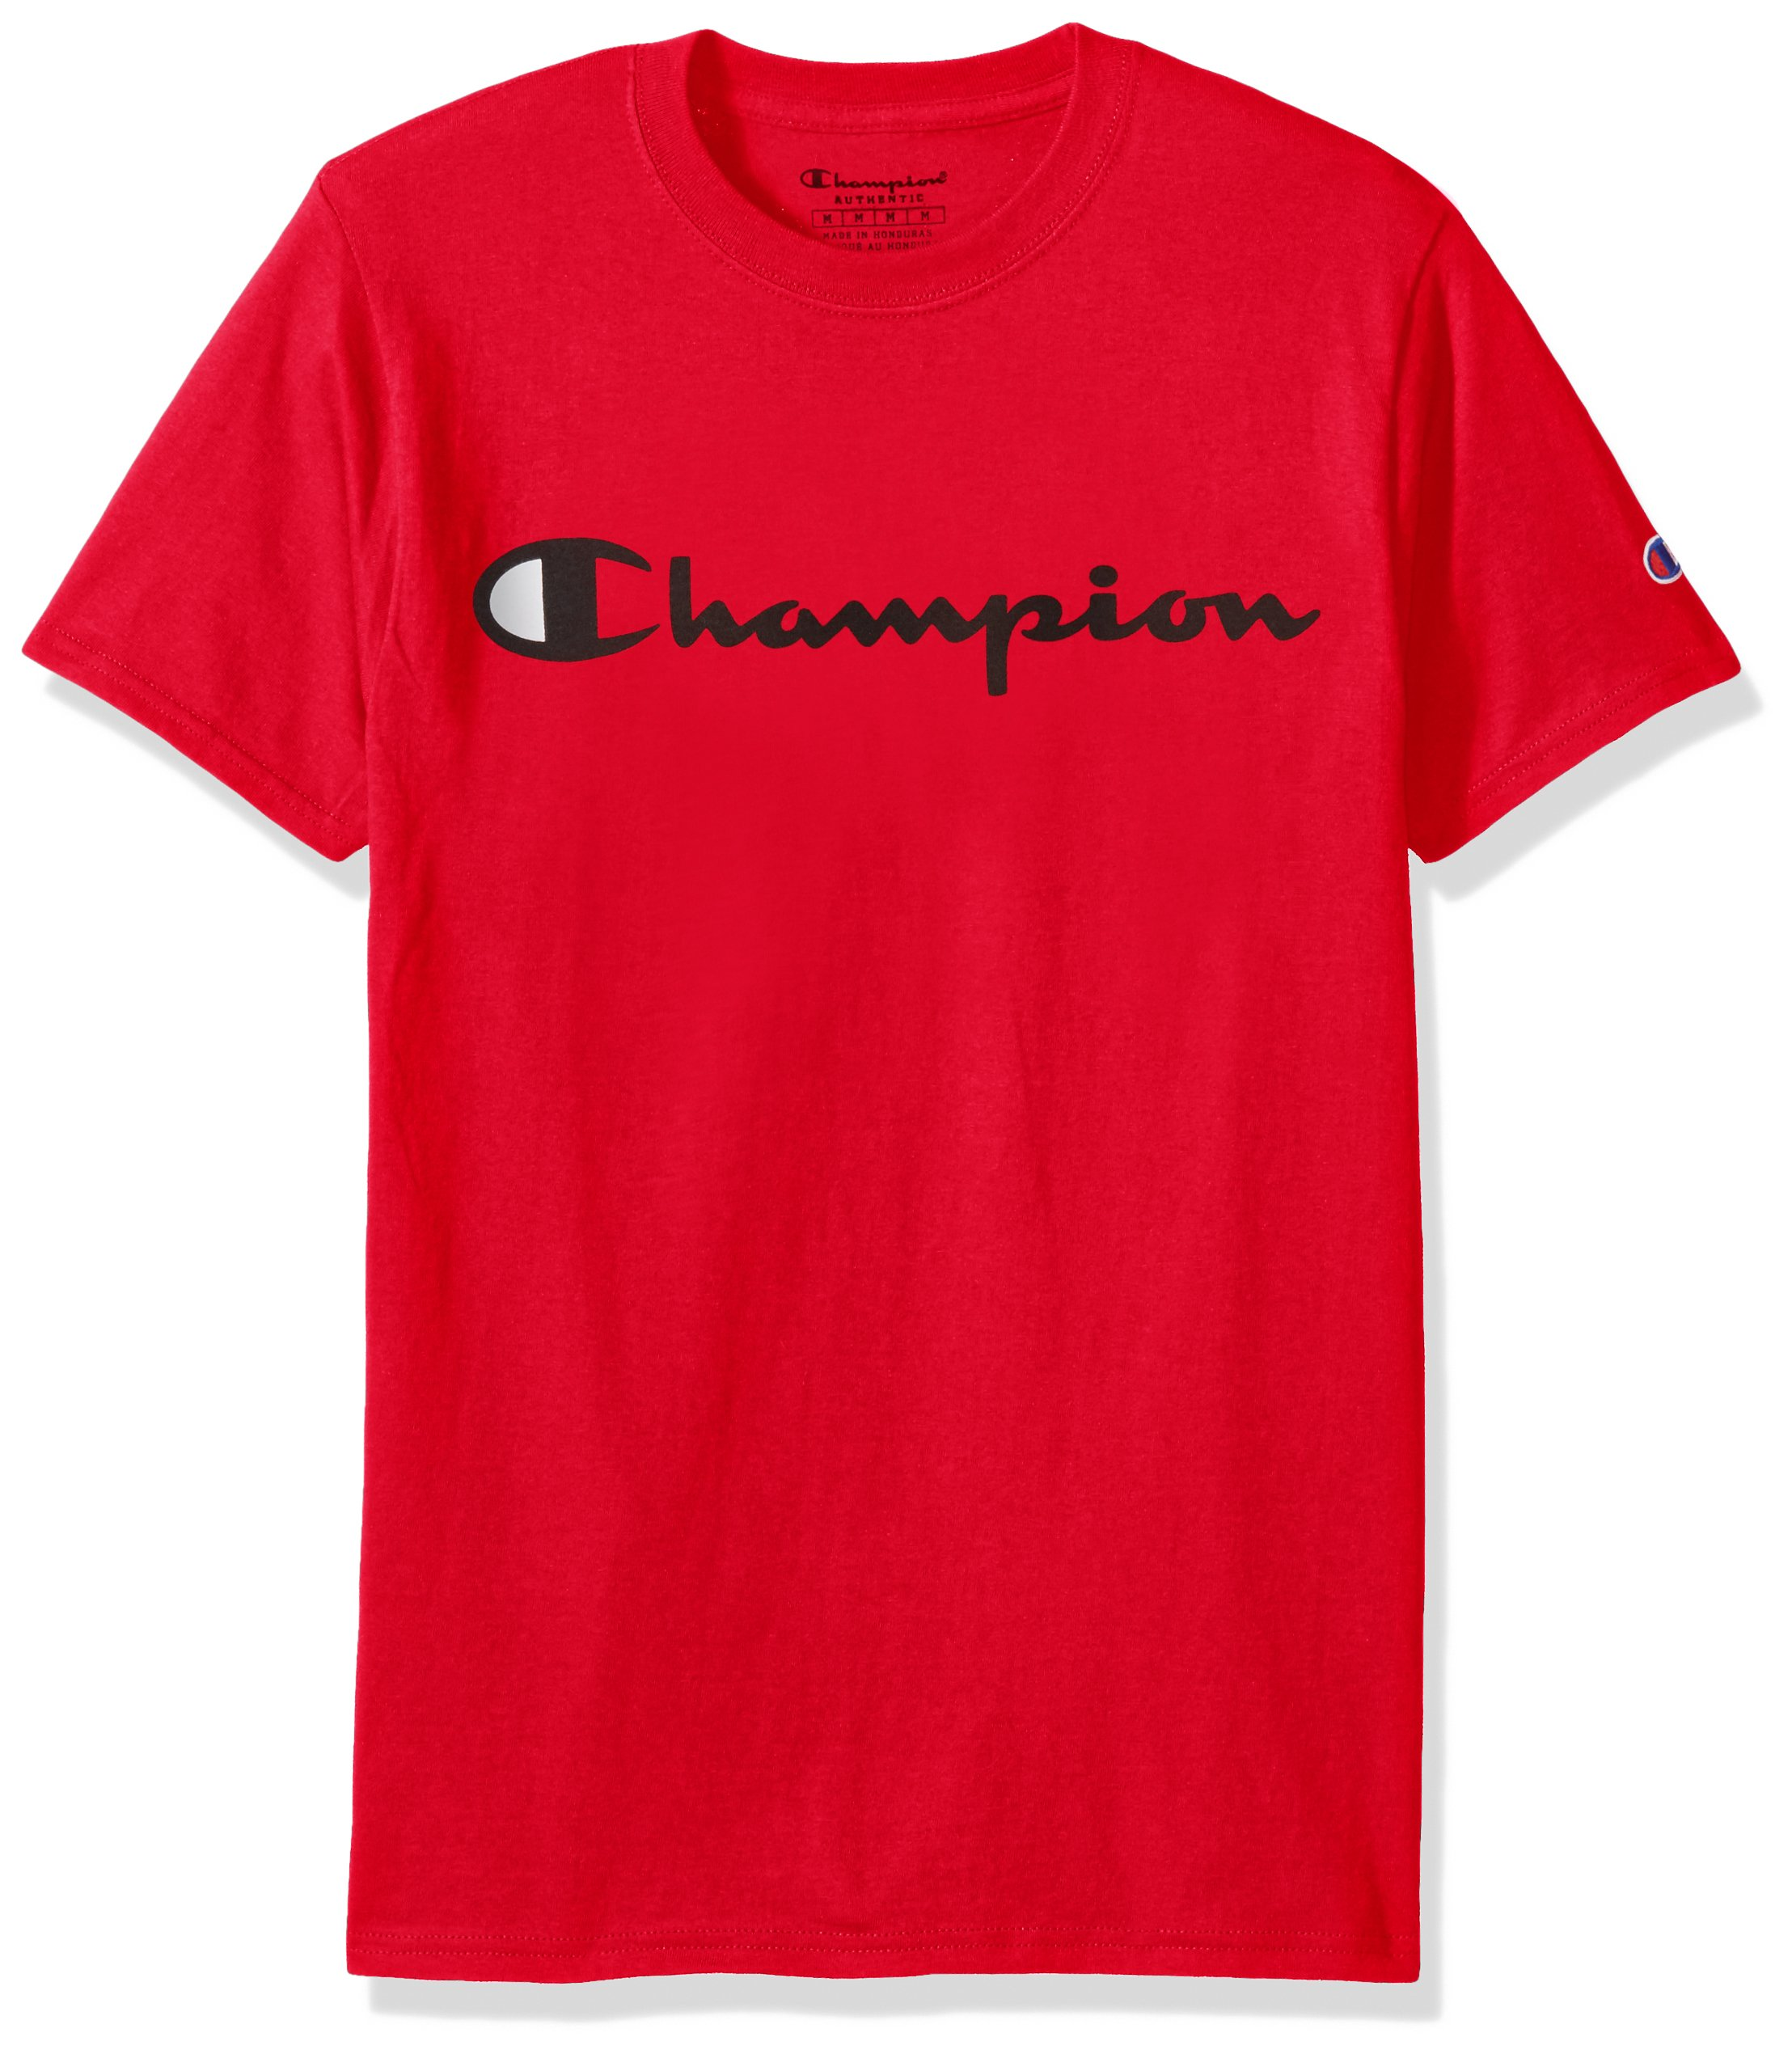 1b6514f4c642 Champion Men's Classic Jersey Script T-Shirt, Athletic Red, 2XL ...